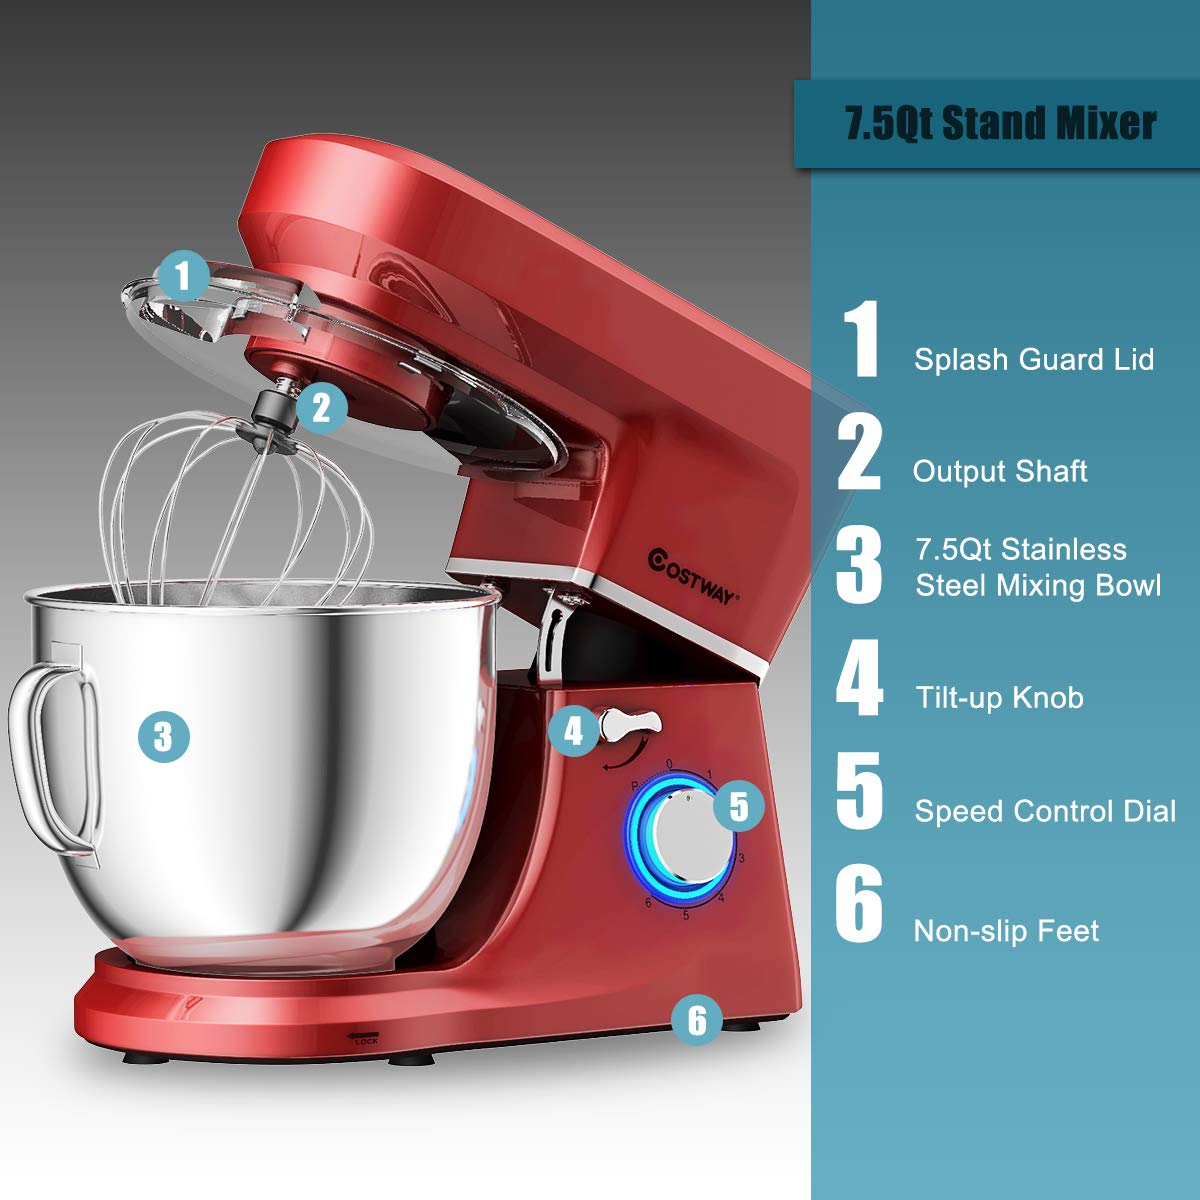 COSTWAY Stand Mixer, 660W Tilt-head Electric Kitchen Food Mixer with 6-Speed Control, 7.5-Quart Stainless Steel Bowl, Dough Hook, Beater, Whisk (Red-update) by COSTWAY (Image #5)